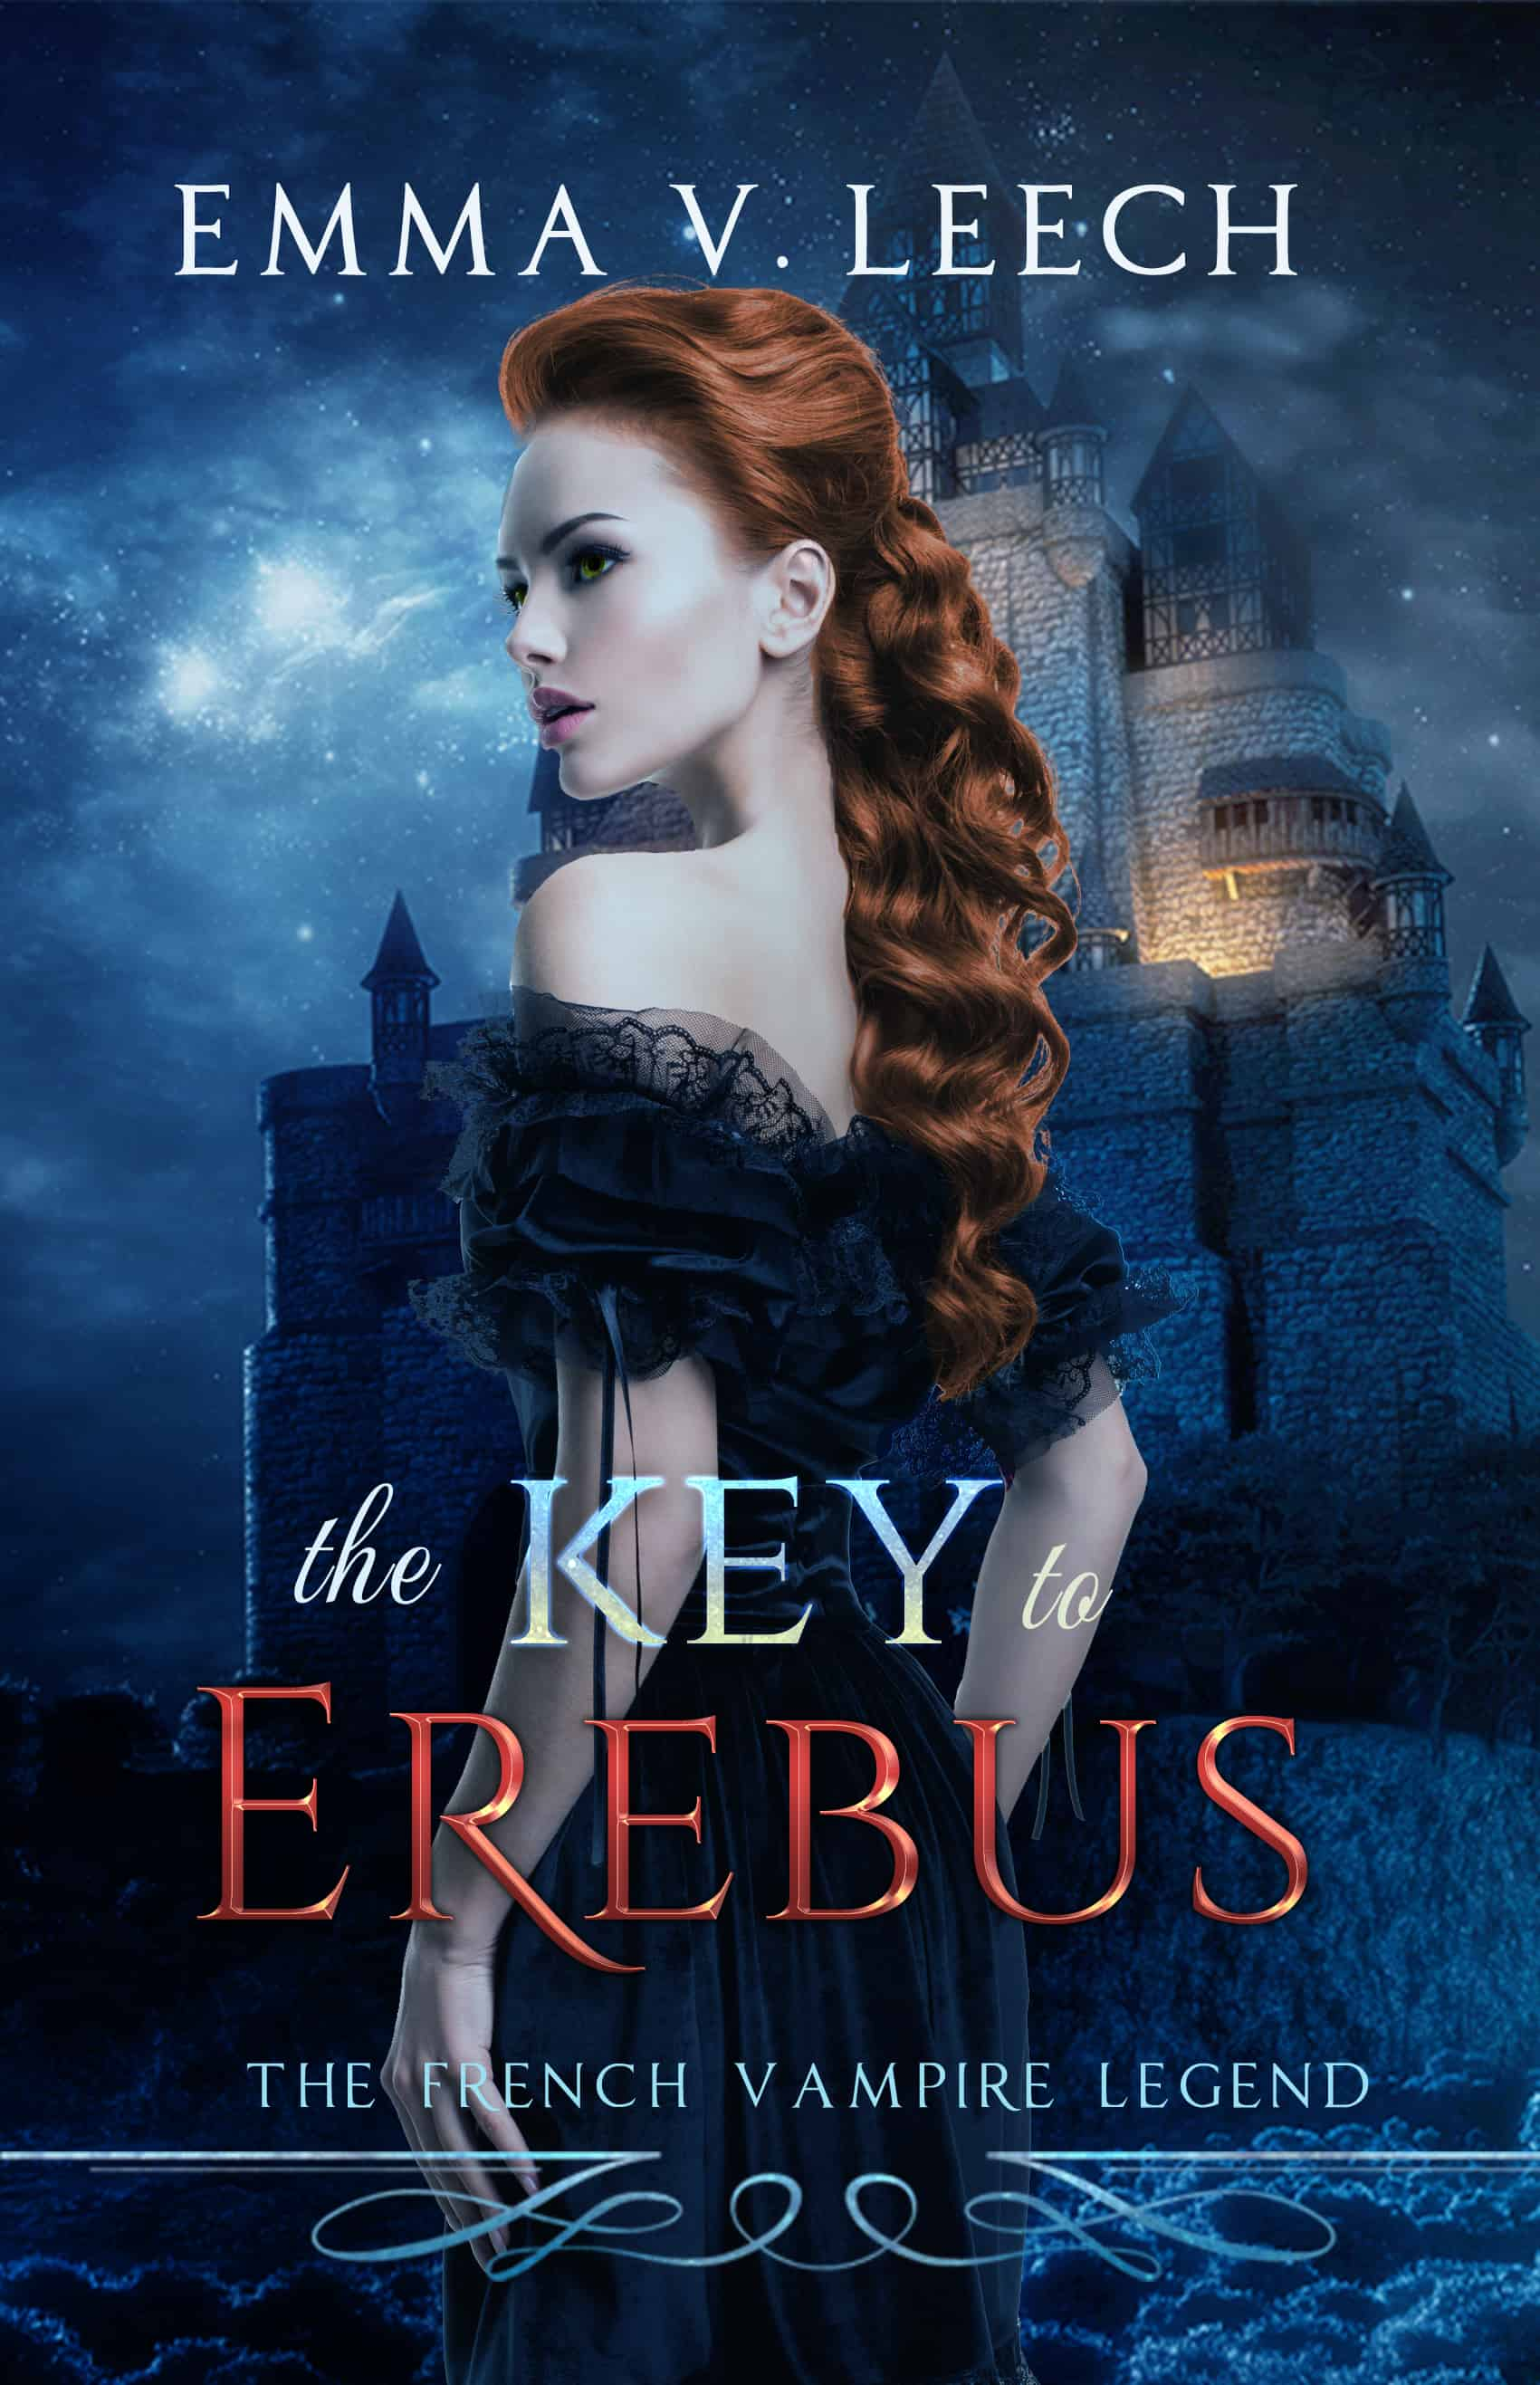 The Key to Erebus